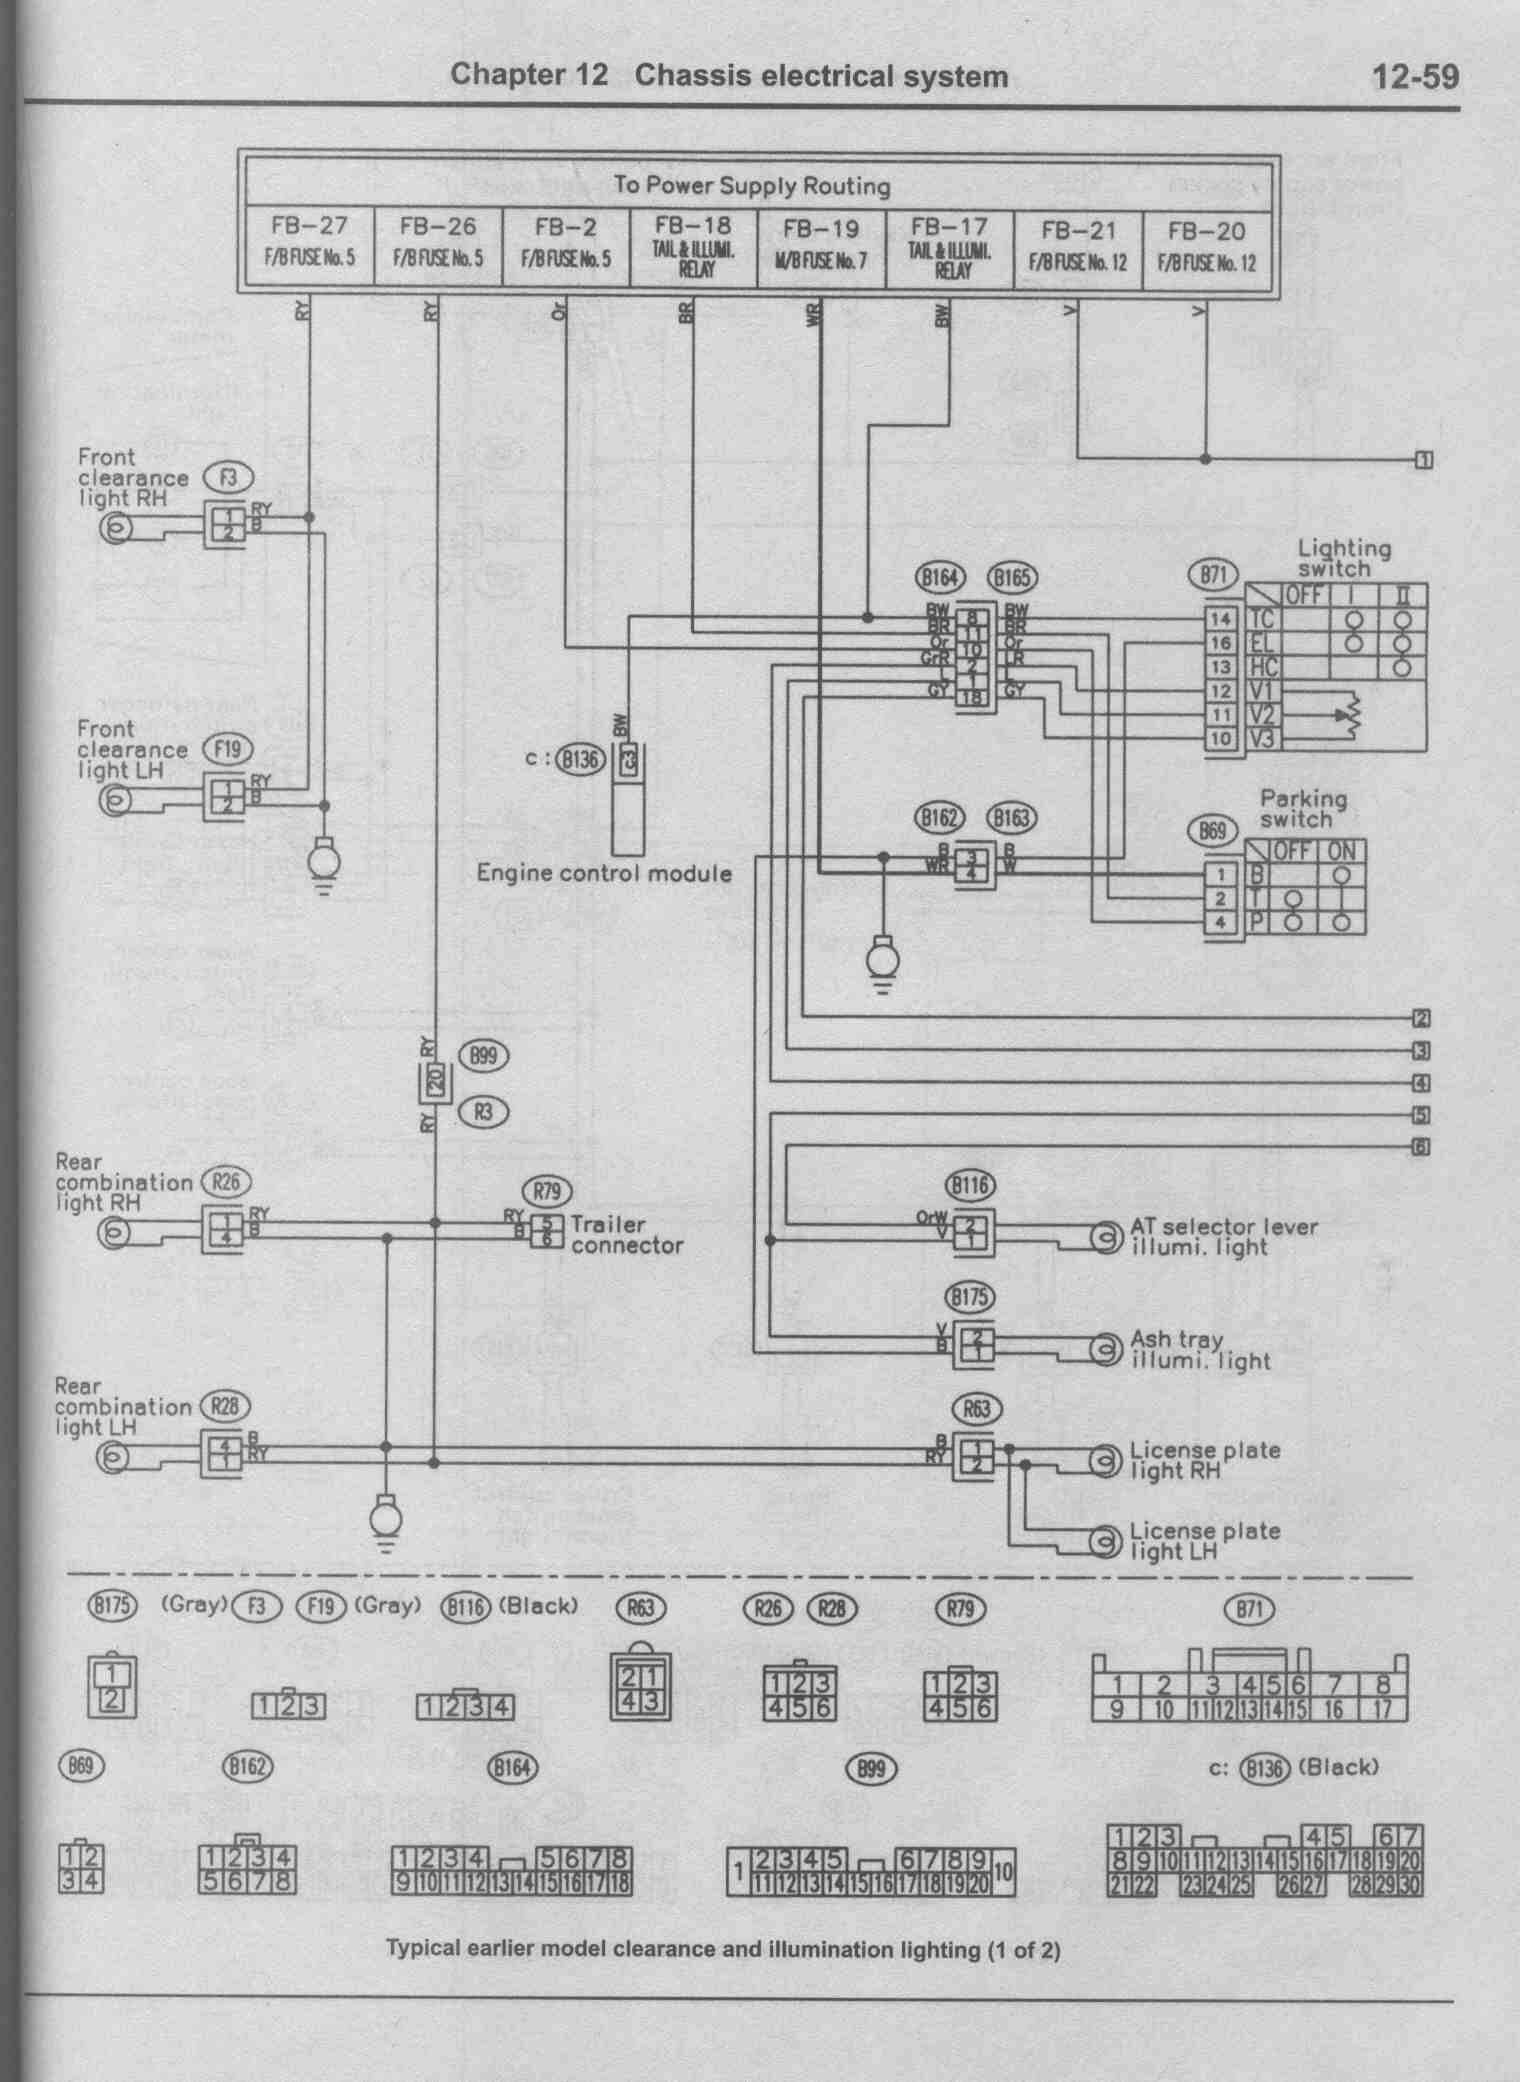 Subaru Wiring Schematic Layout Diagrams Legacy Window Diagram Need Wire For 2001 Outback Rh Subaruoutback Org 2004 Forester